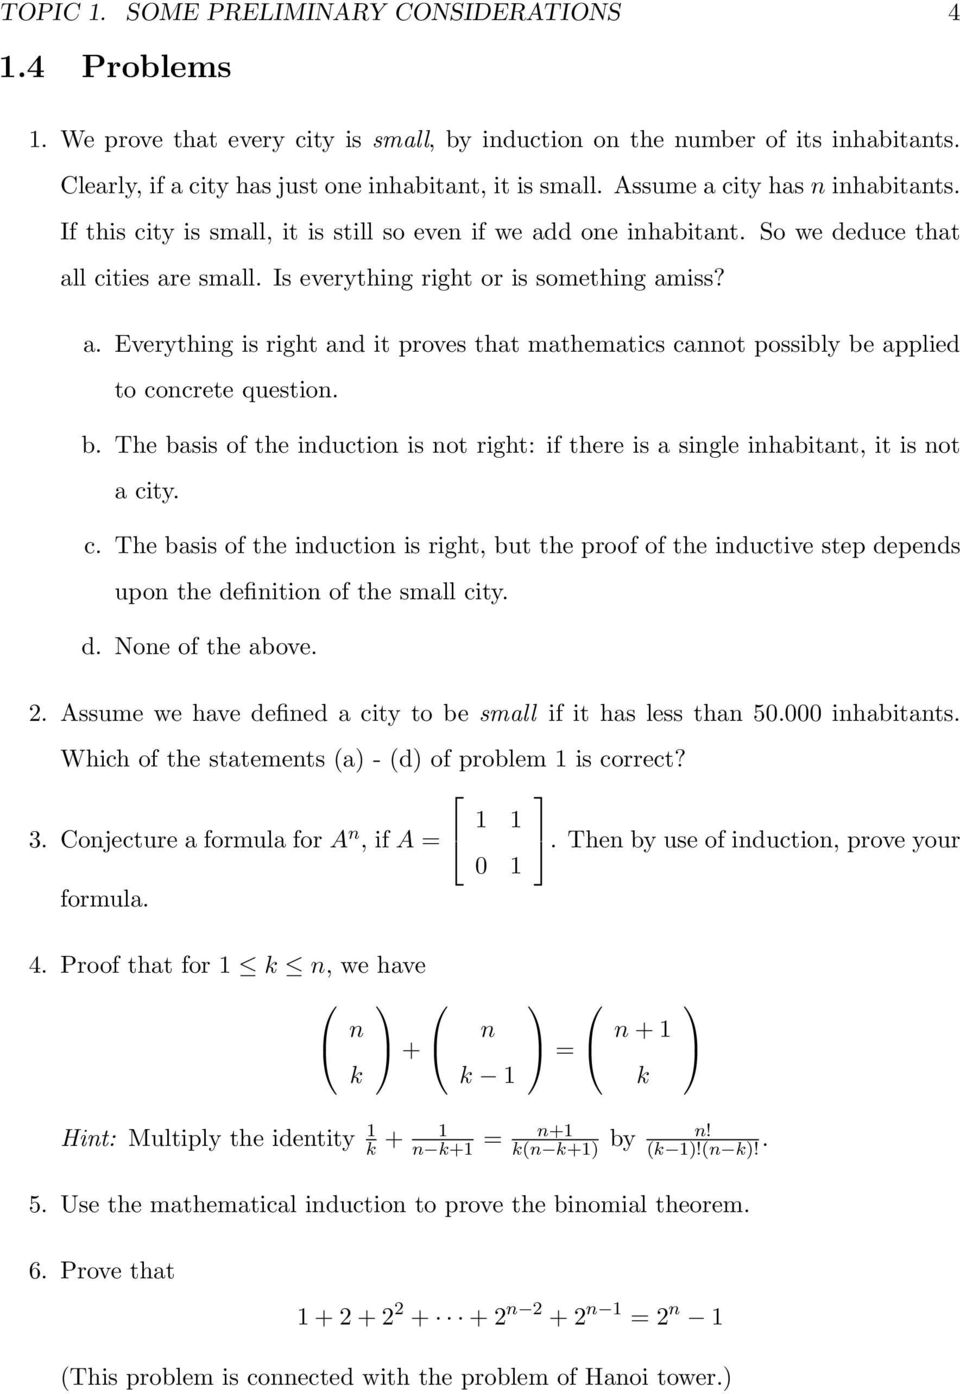 b. The basis of the induction is not right: if there is a single inhabitant, it is not a ci